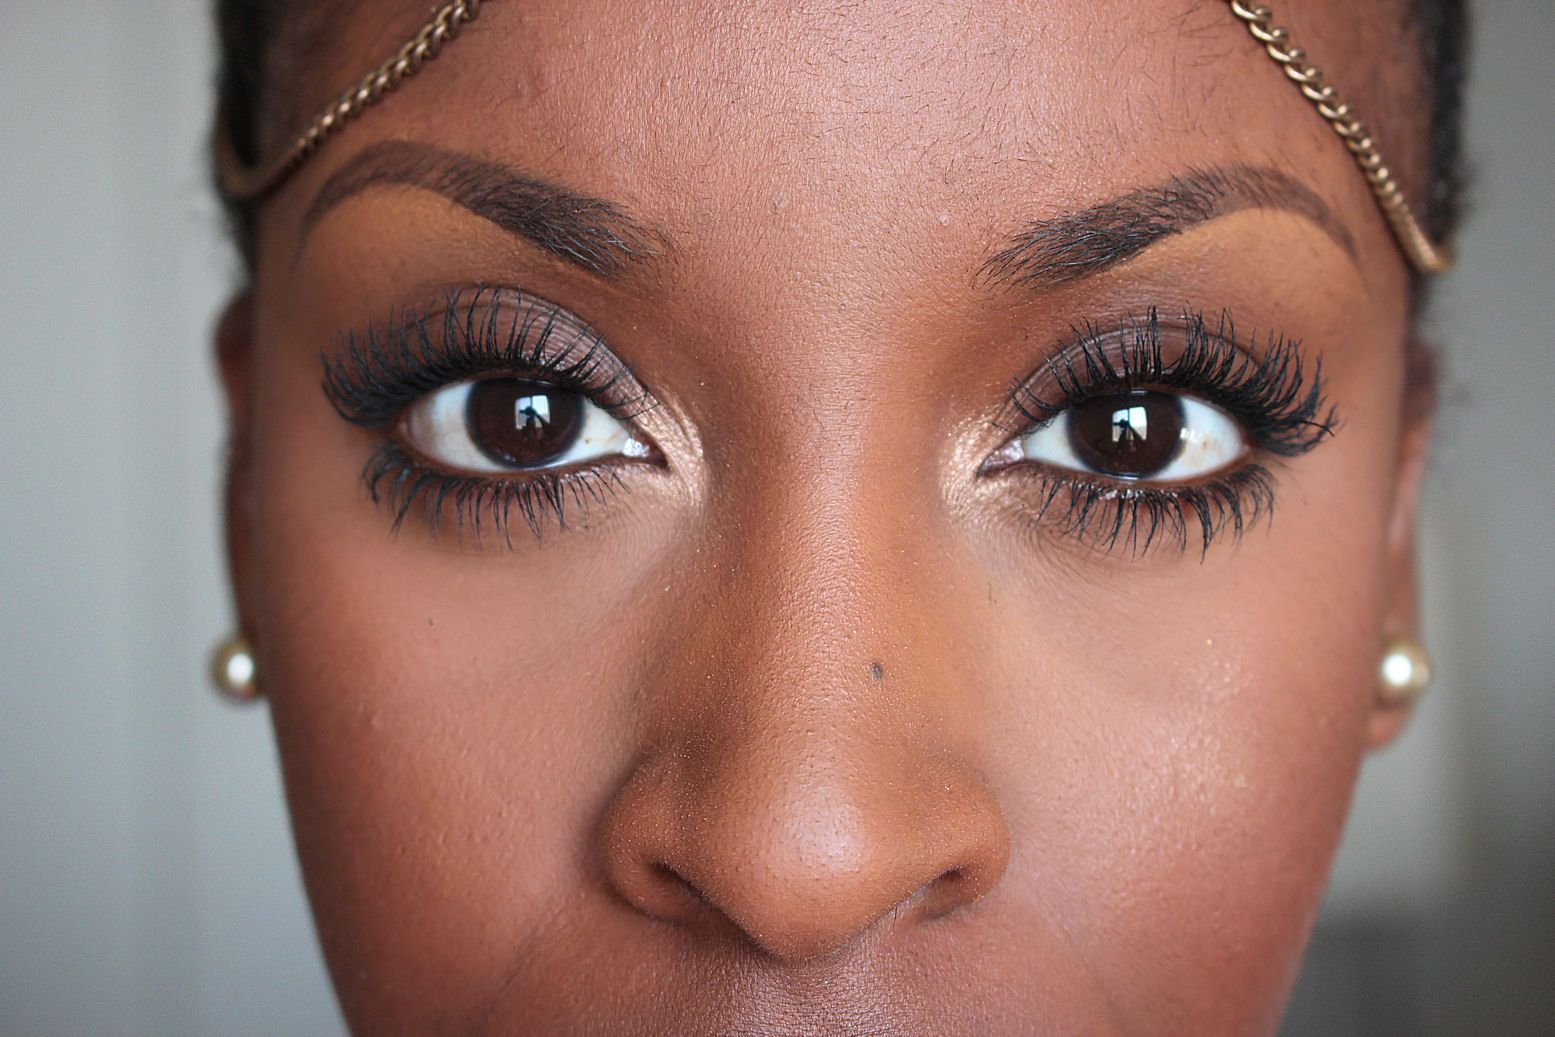 Eyelash Extensions On Curly Lashes Google Search Beauty